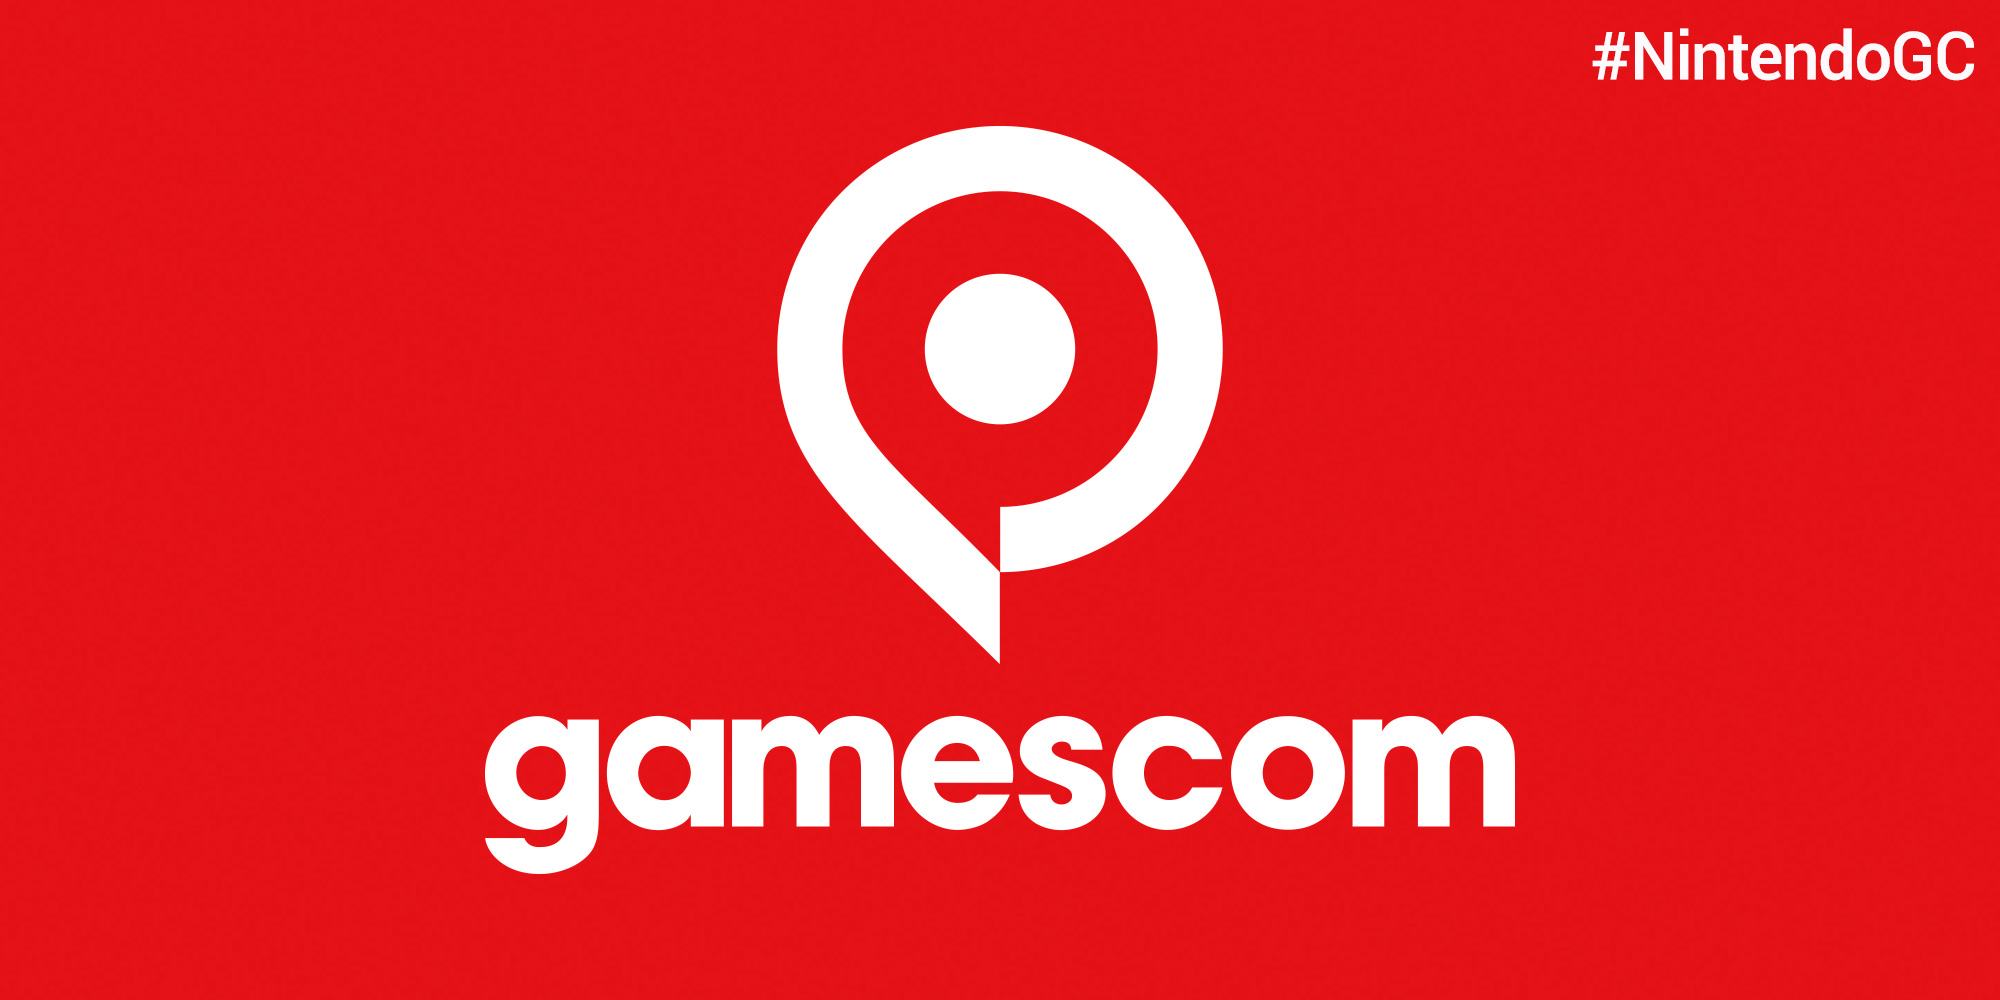 Sitio web de Nintendo of Europe para la gamescom 2017